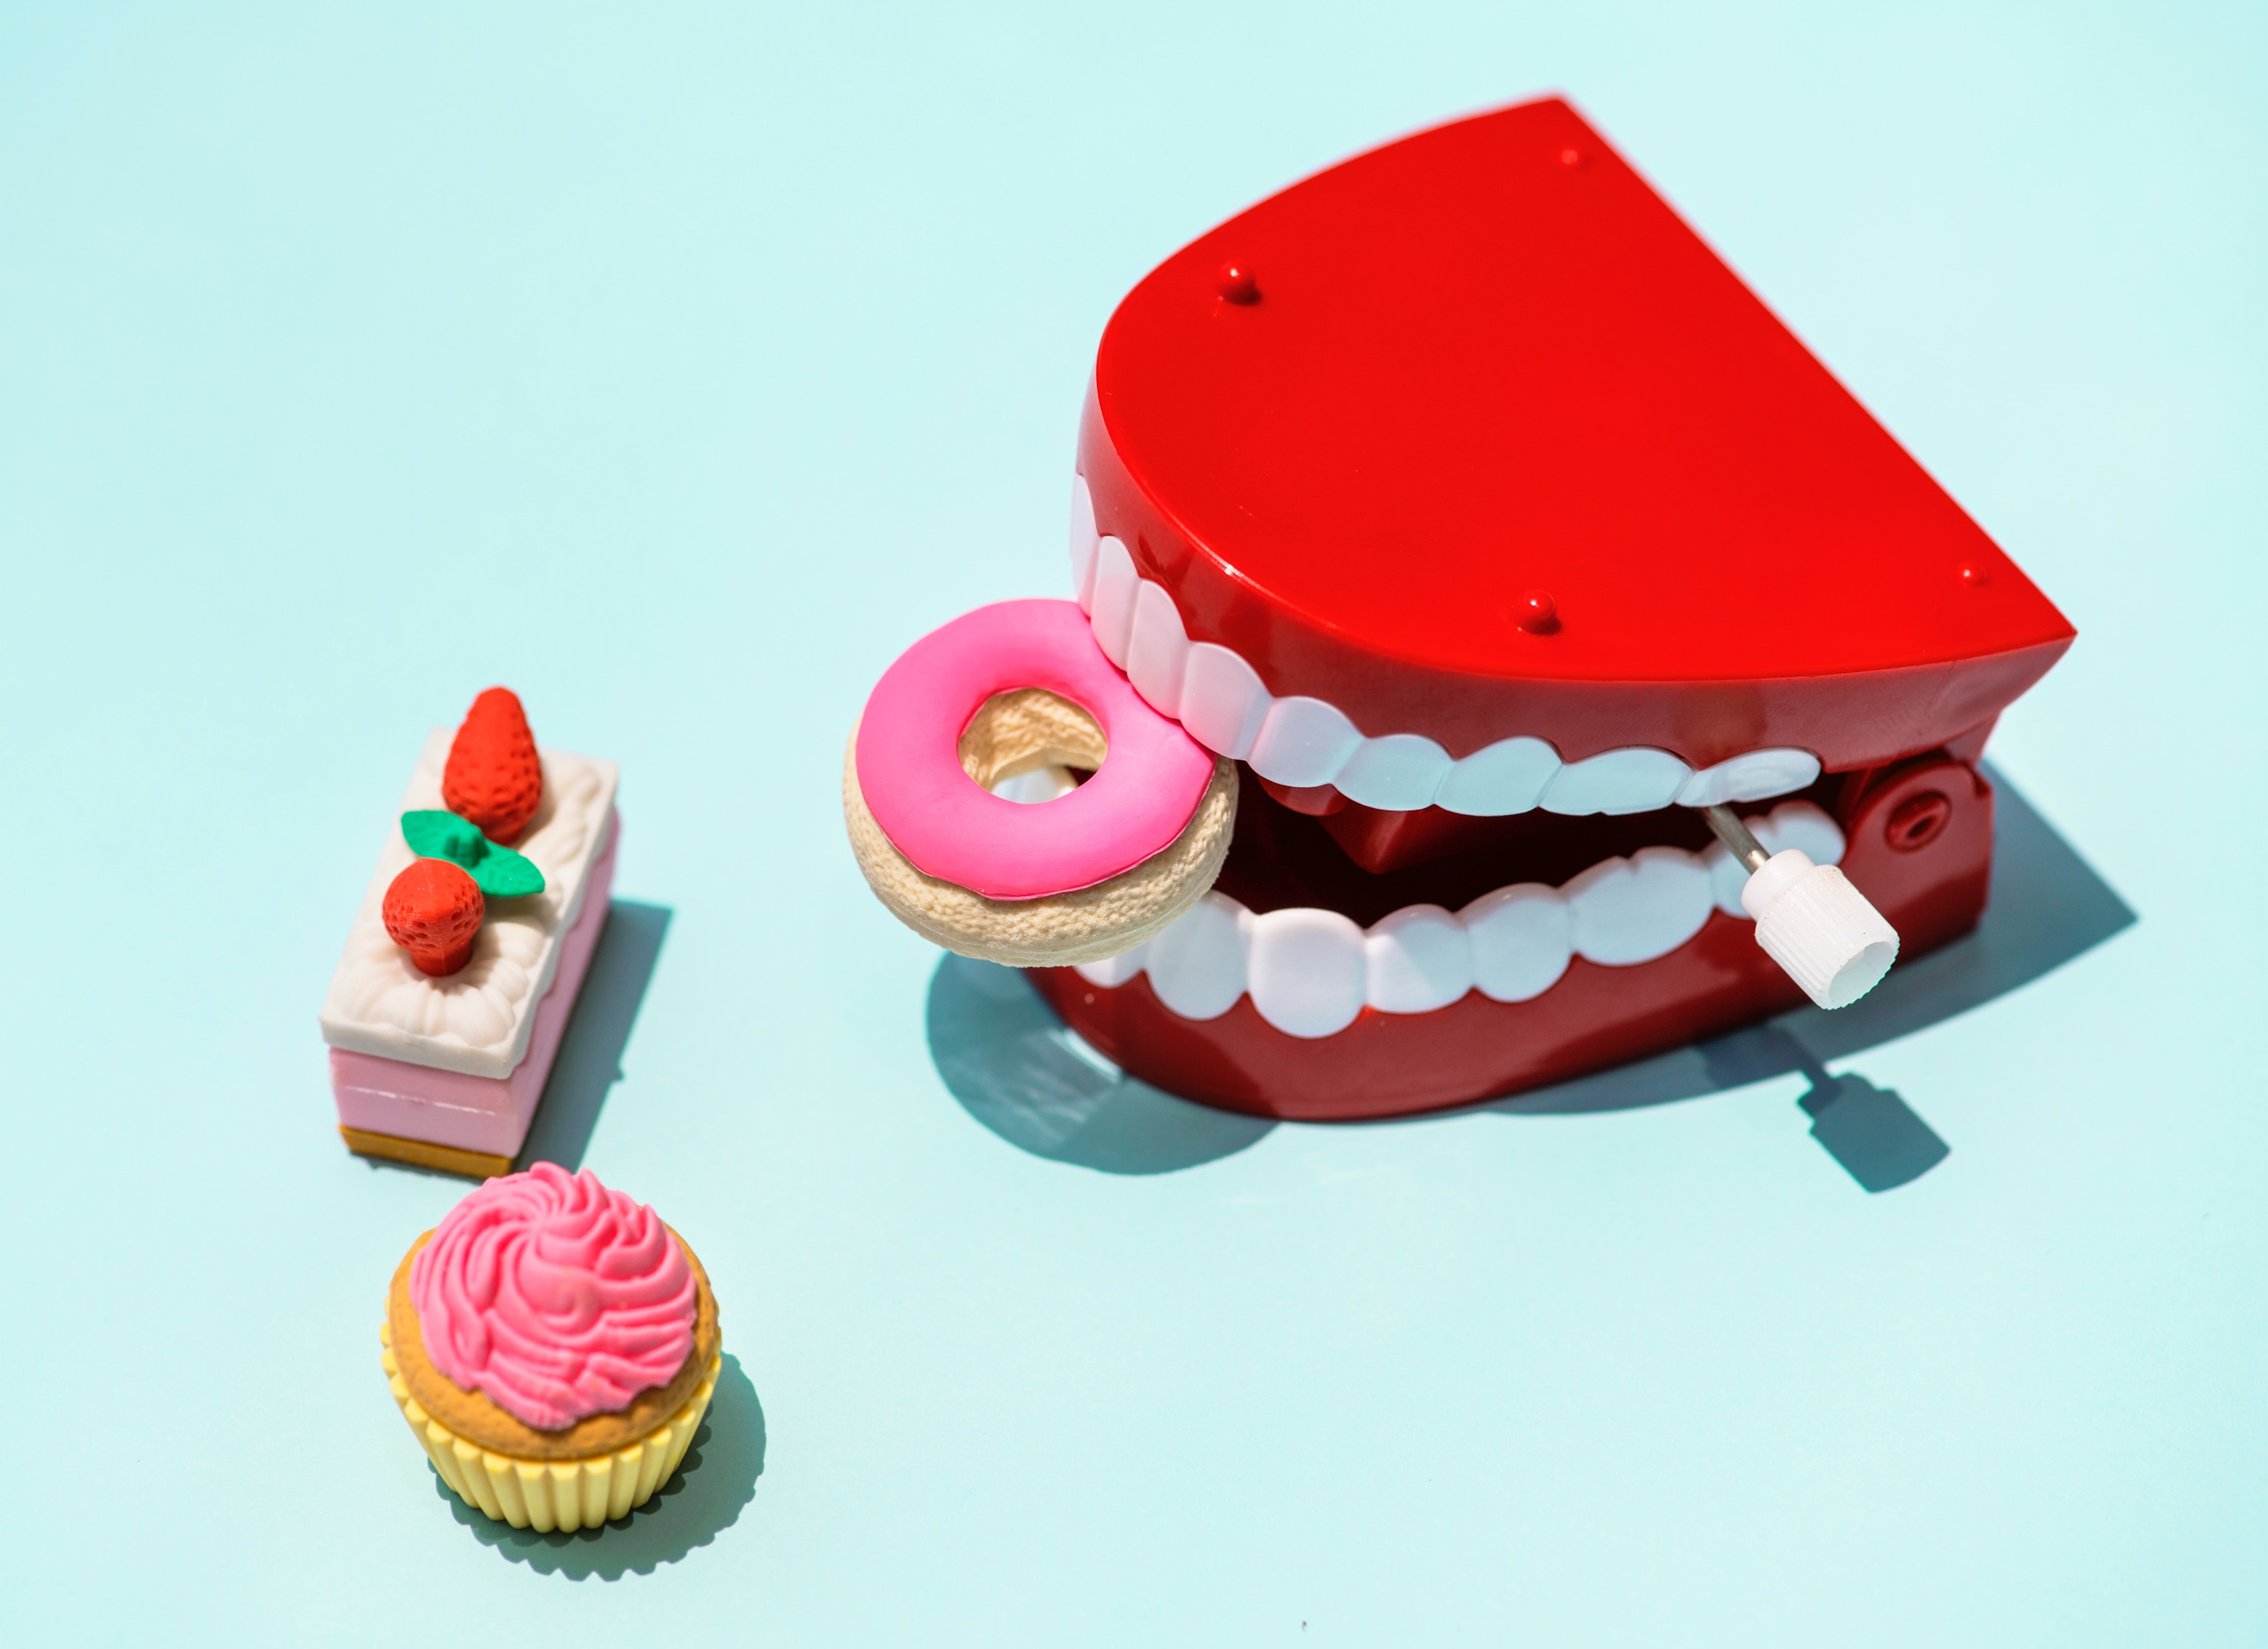 Snappy teeth and cake for gum disease